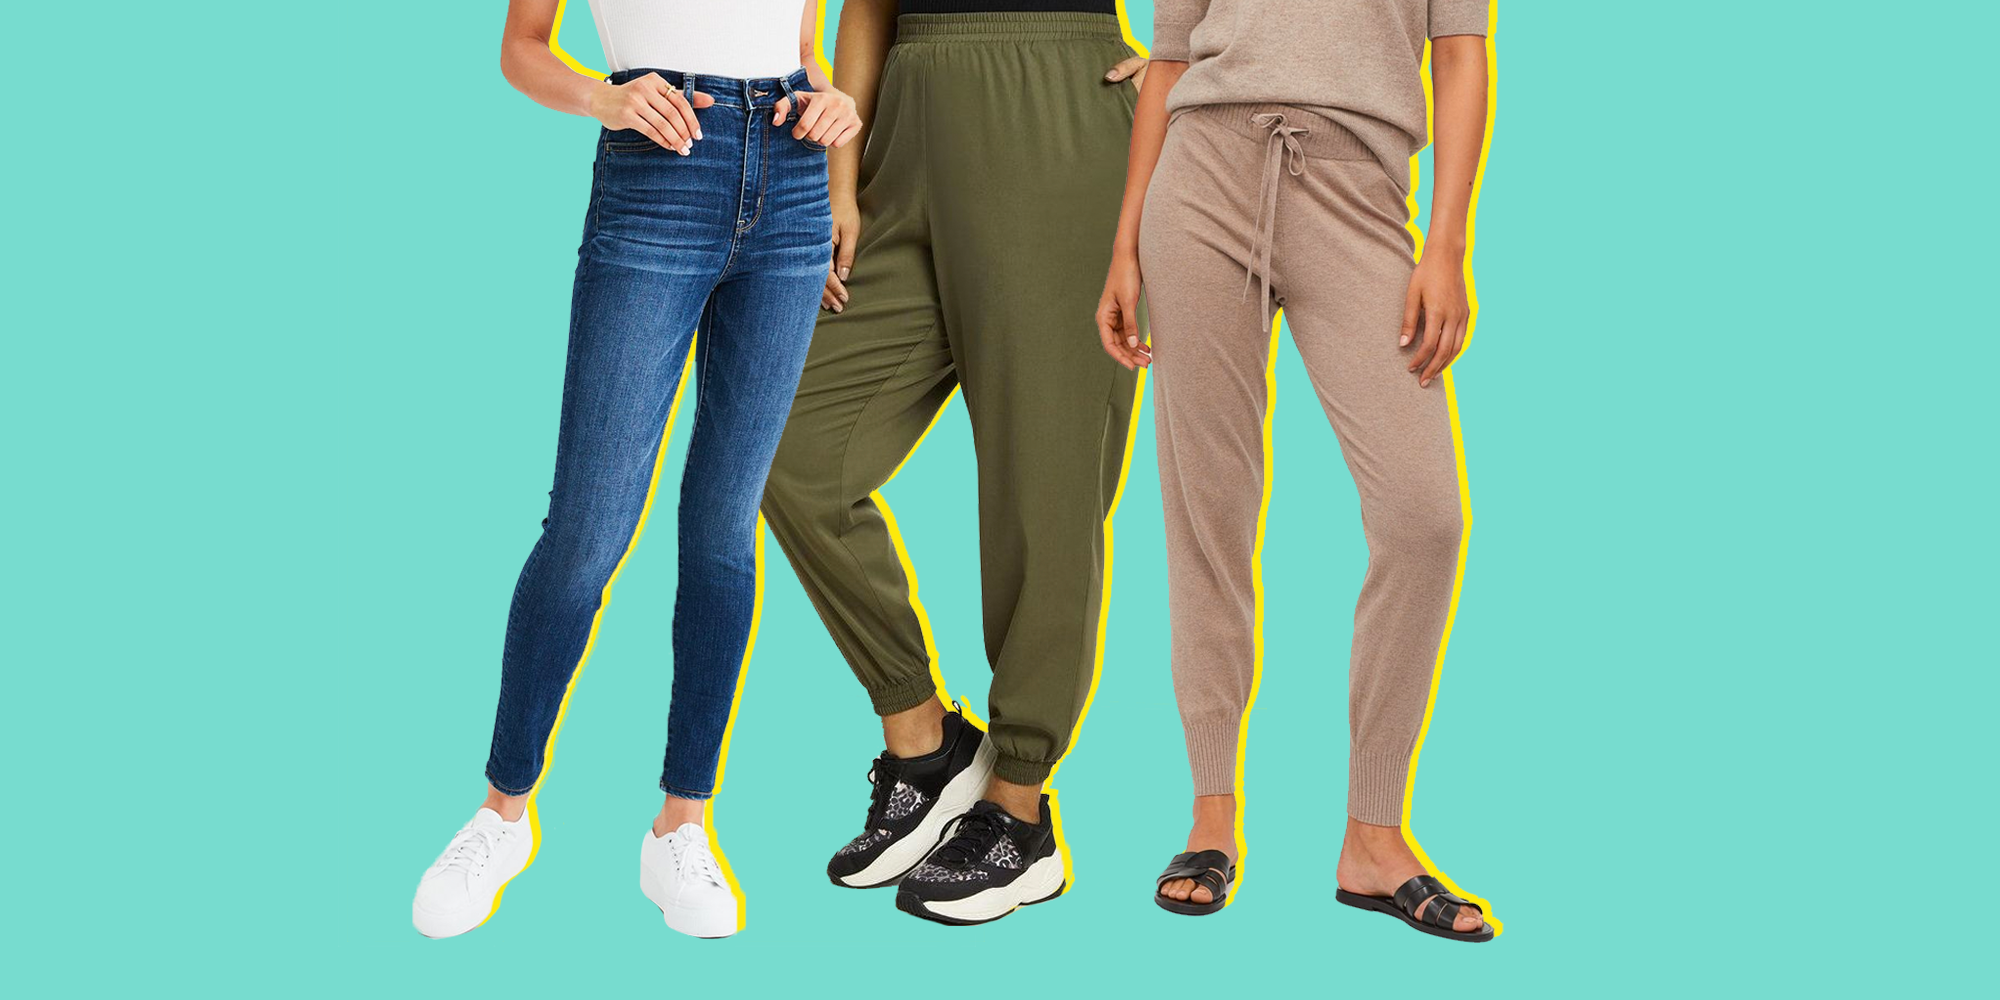 The Best Travel Pants for Women Who Don't Want to Sacrifice Comfort for Style